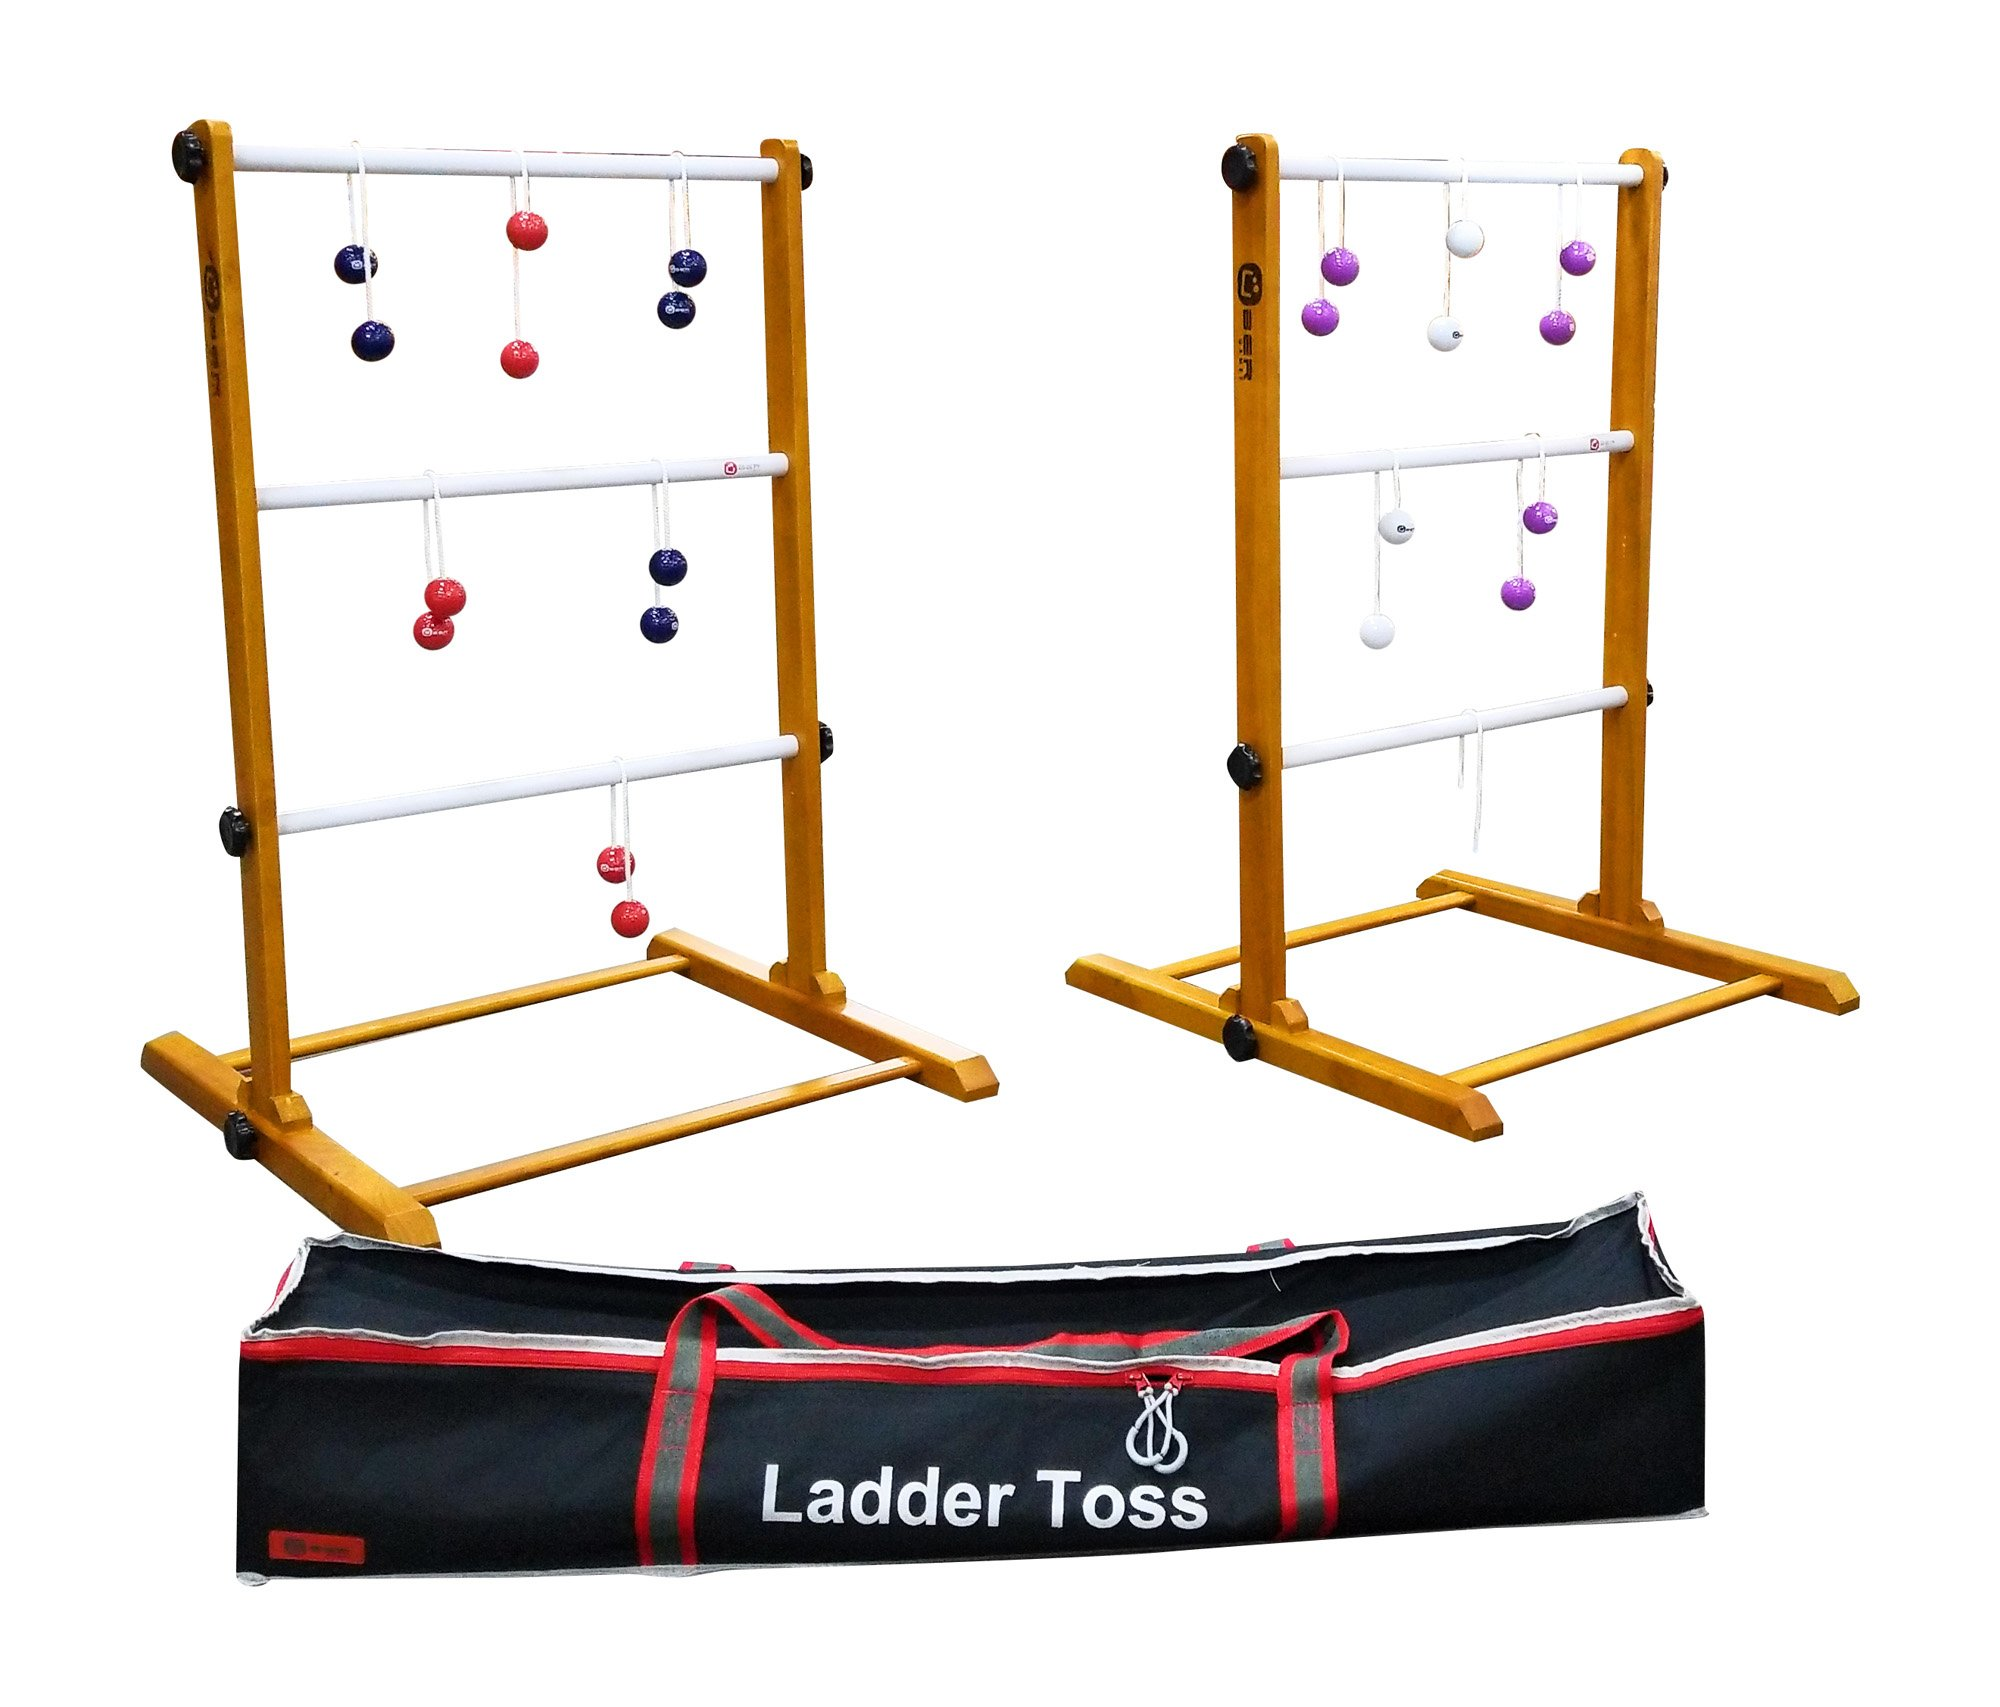 Uber Games Ladder Toss - Double Game - Red, Navy Blue, White, and Purple Bolas